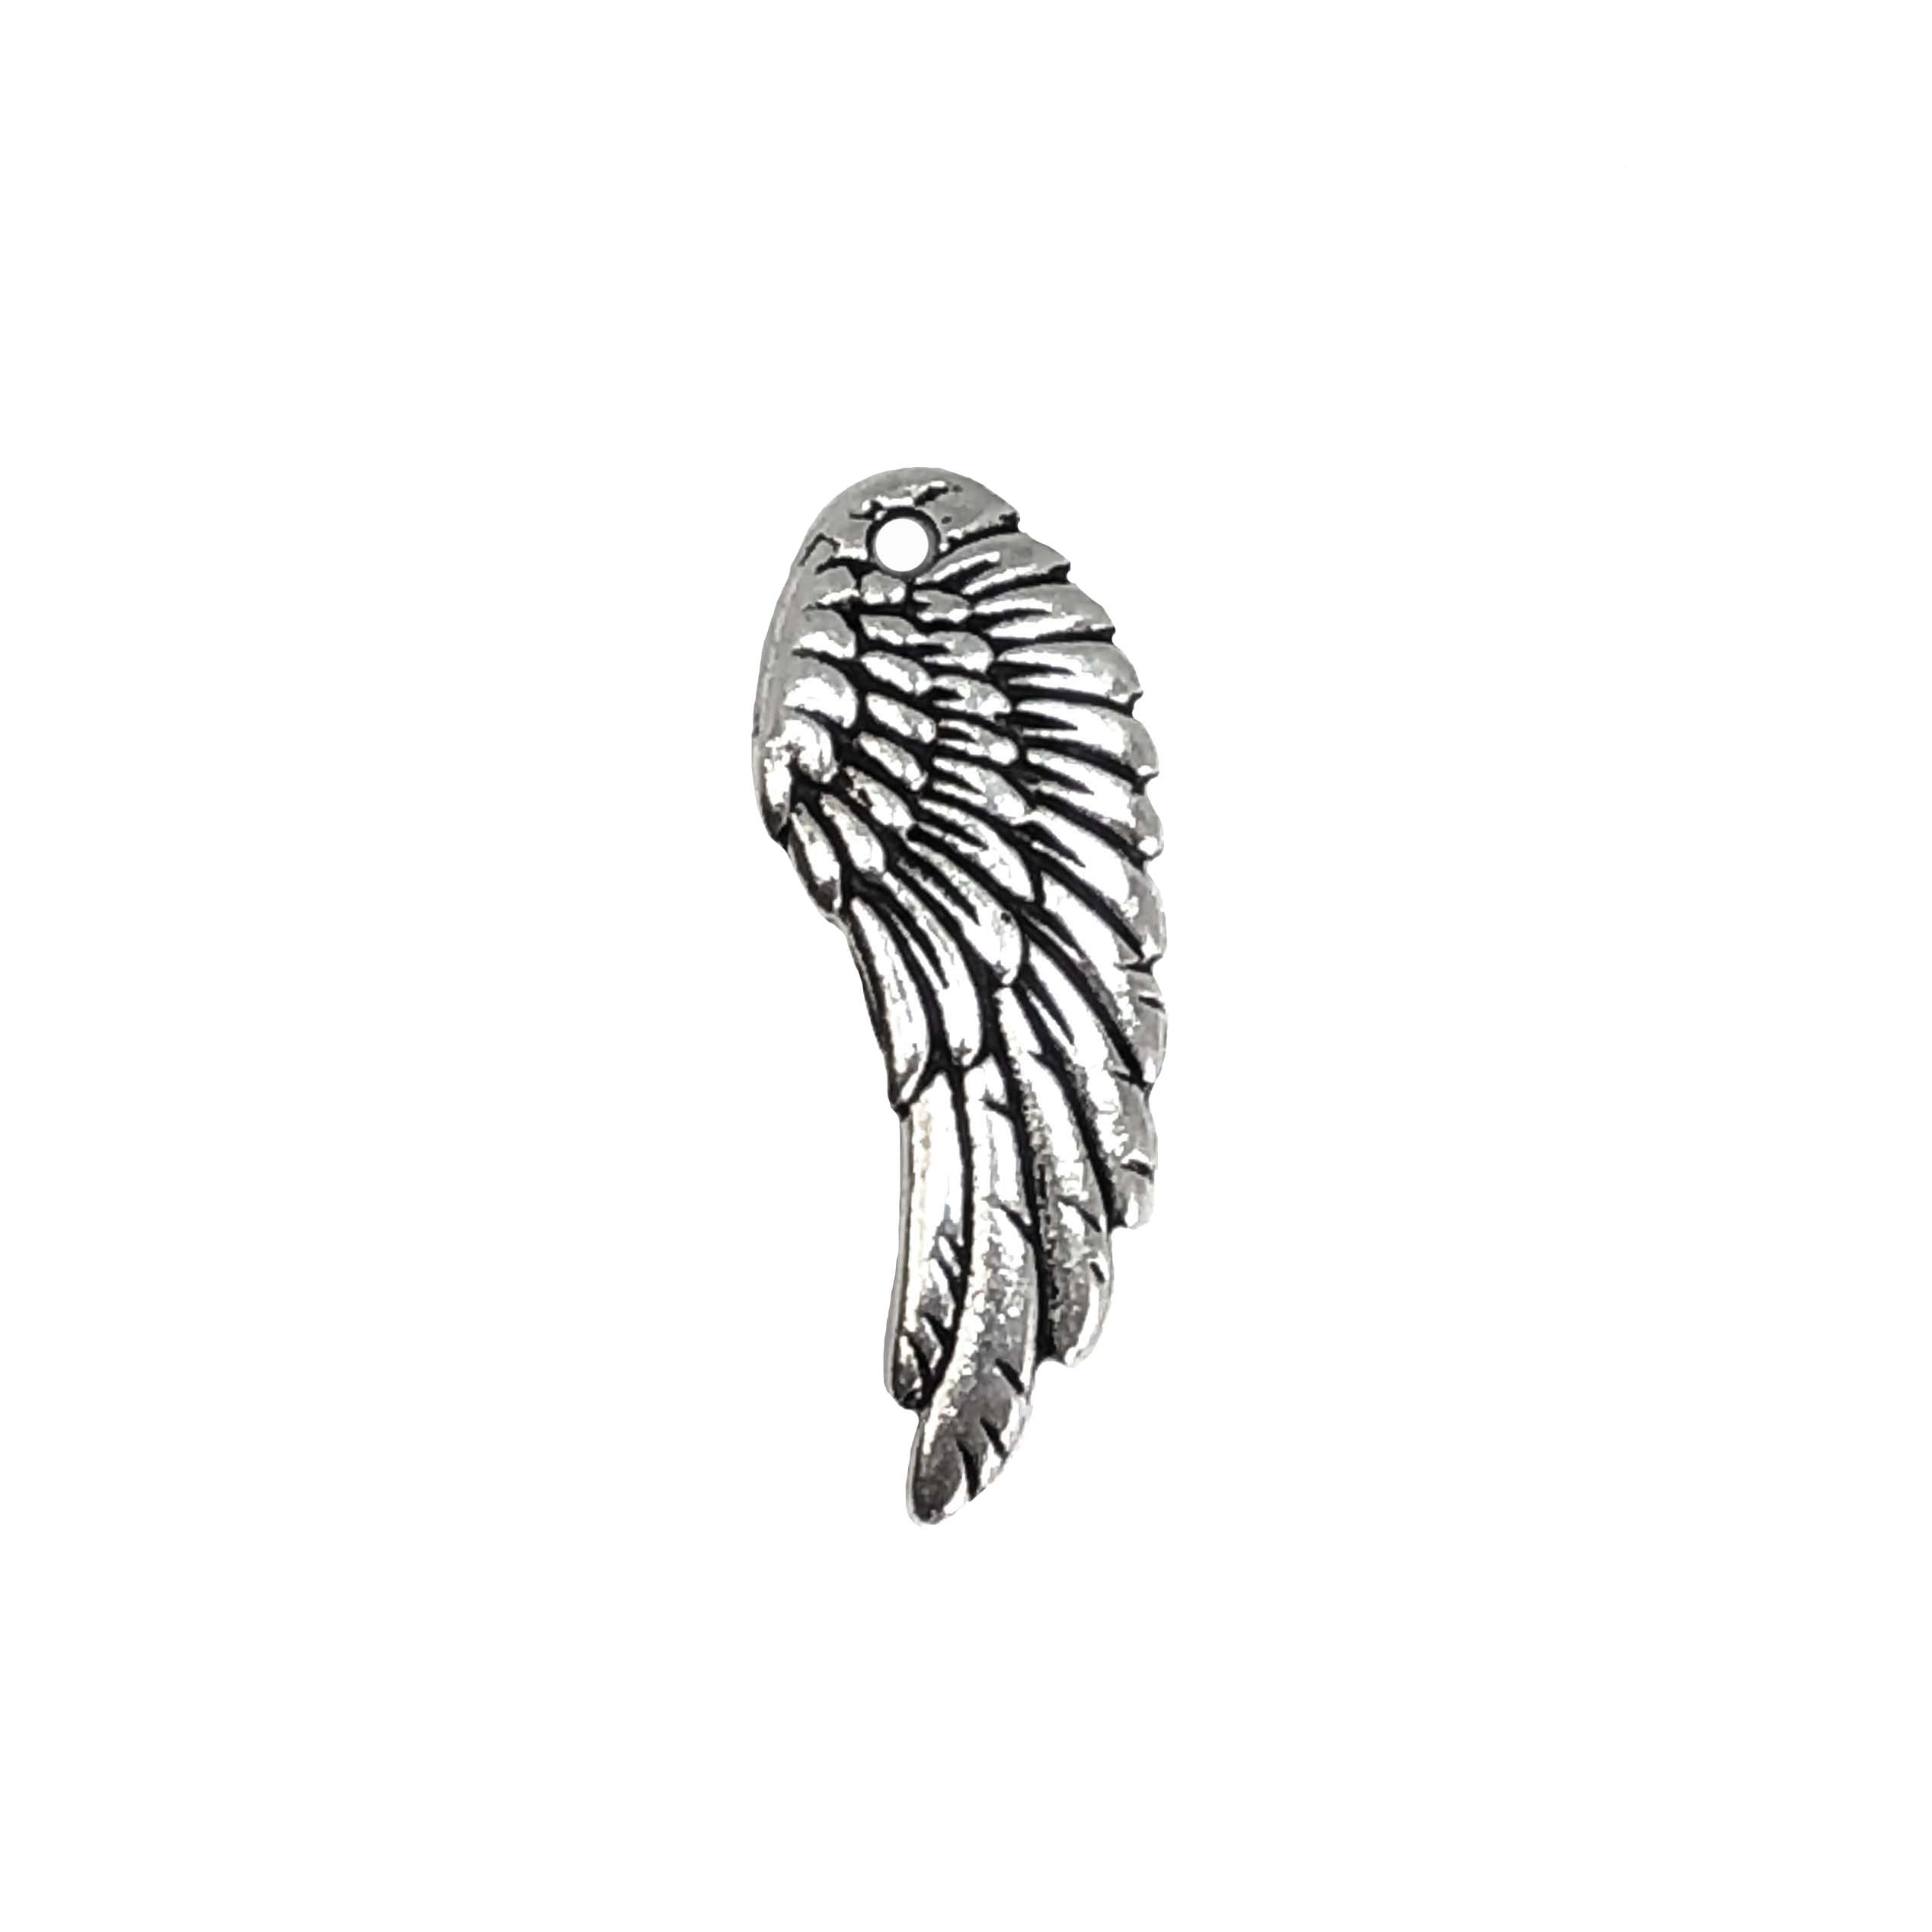 wings, bird wing, antique silver, 01003, Steampunk Art, vintage jewelry supplies, jewelry making supplies, jewelry parts, B'sue Boutiques, silver wings, silver, wings, bird, birds, feathers, charm, wing pendant